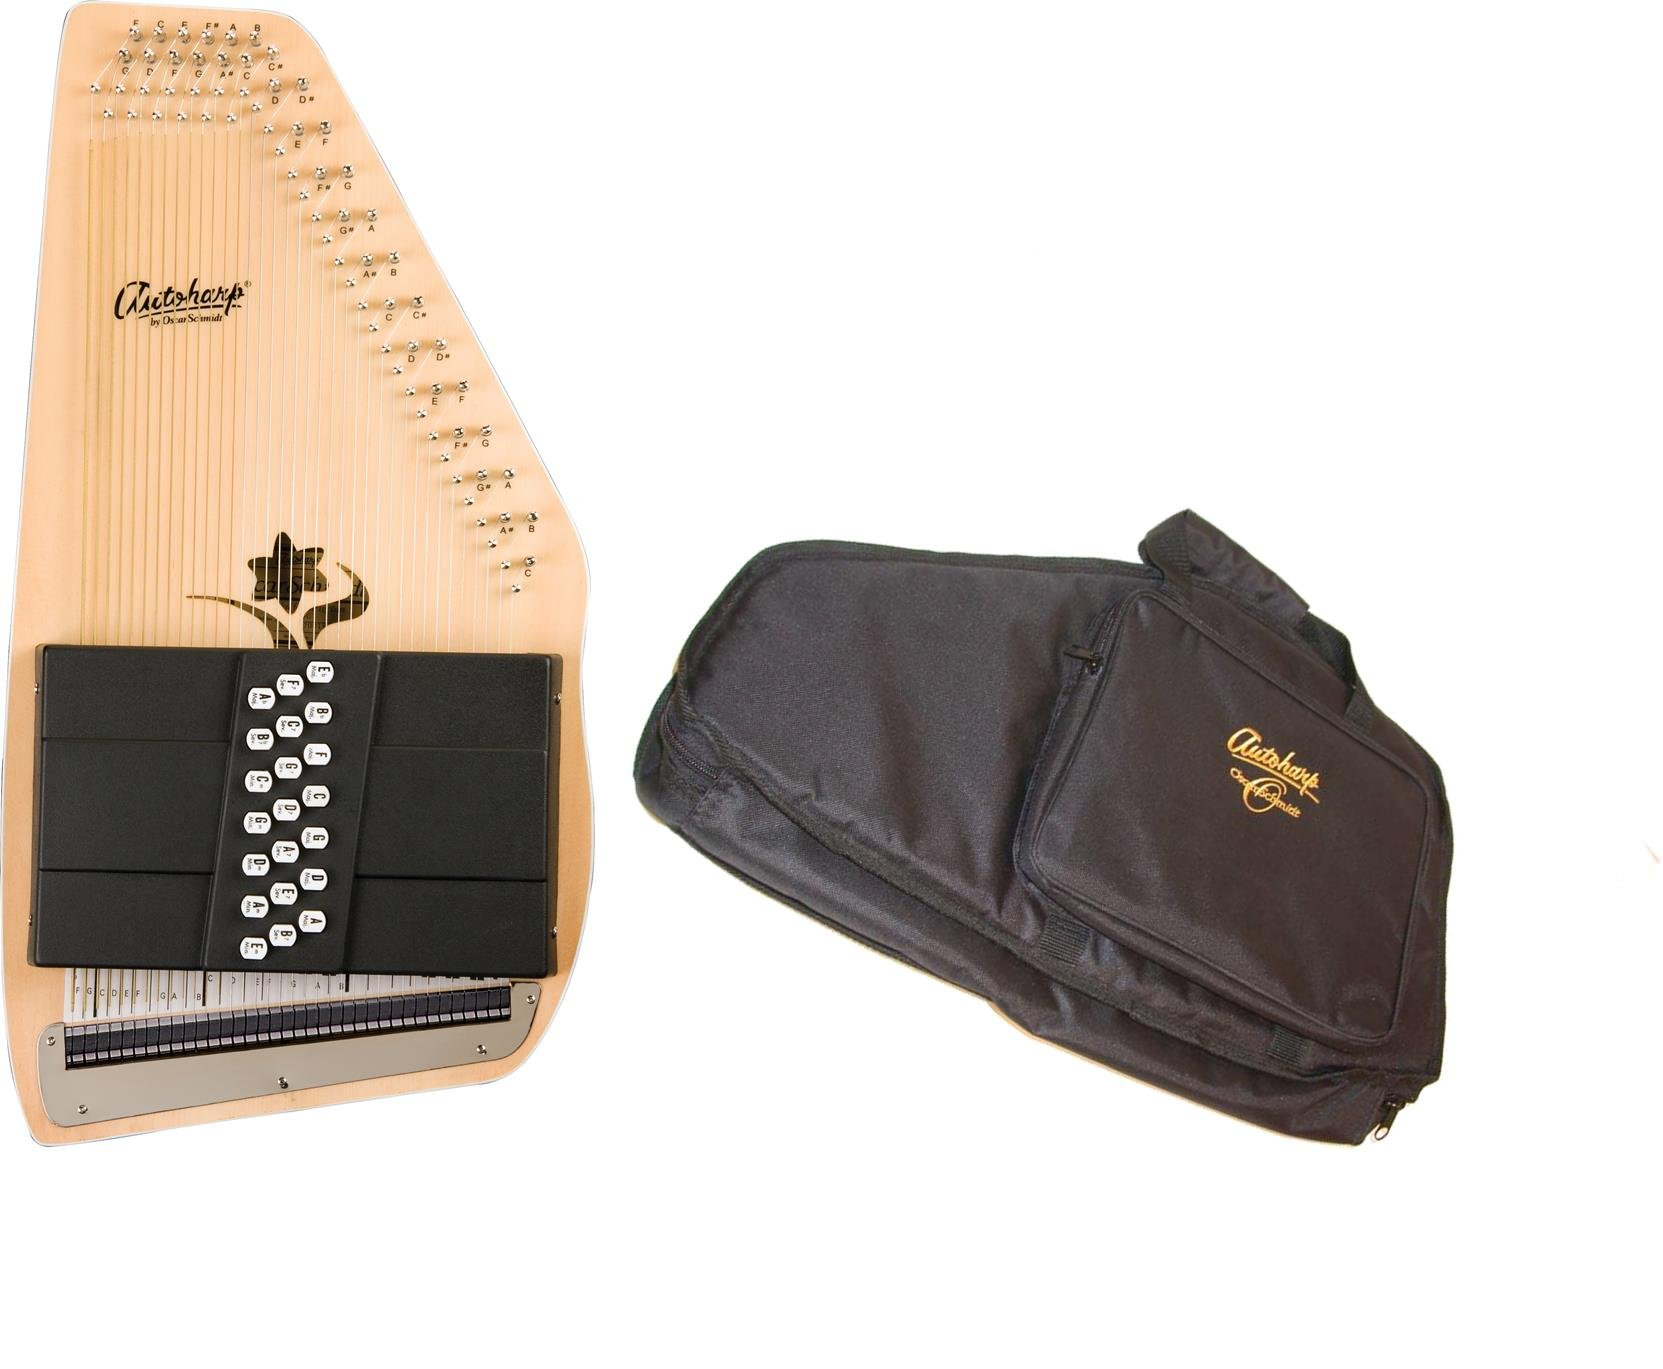 Oscar Schmidt 21 Chord Autoharp w/ Gig Bag, The ''Appalachian'', Maple Body, OS45C